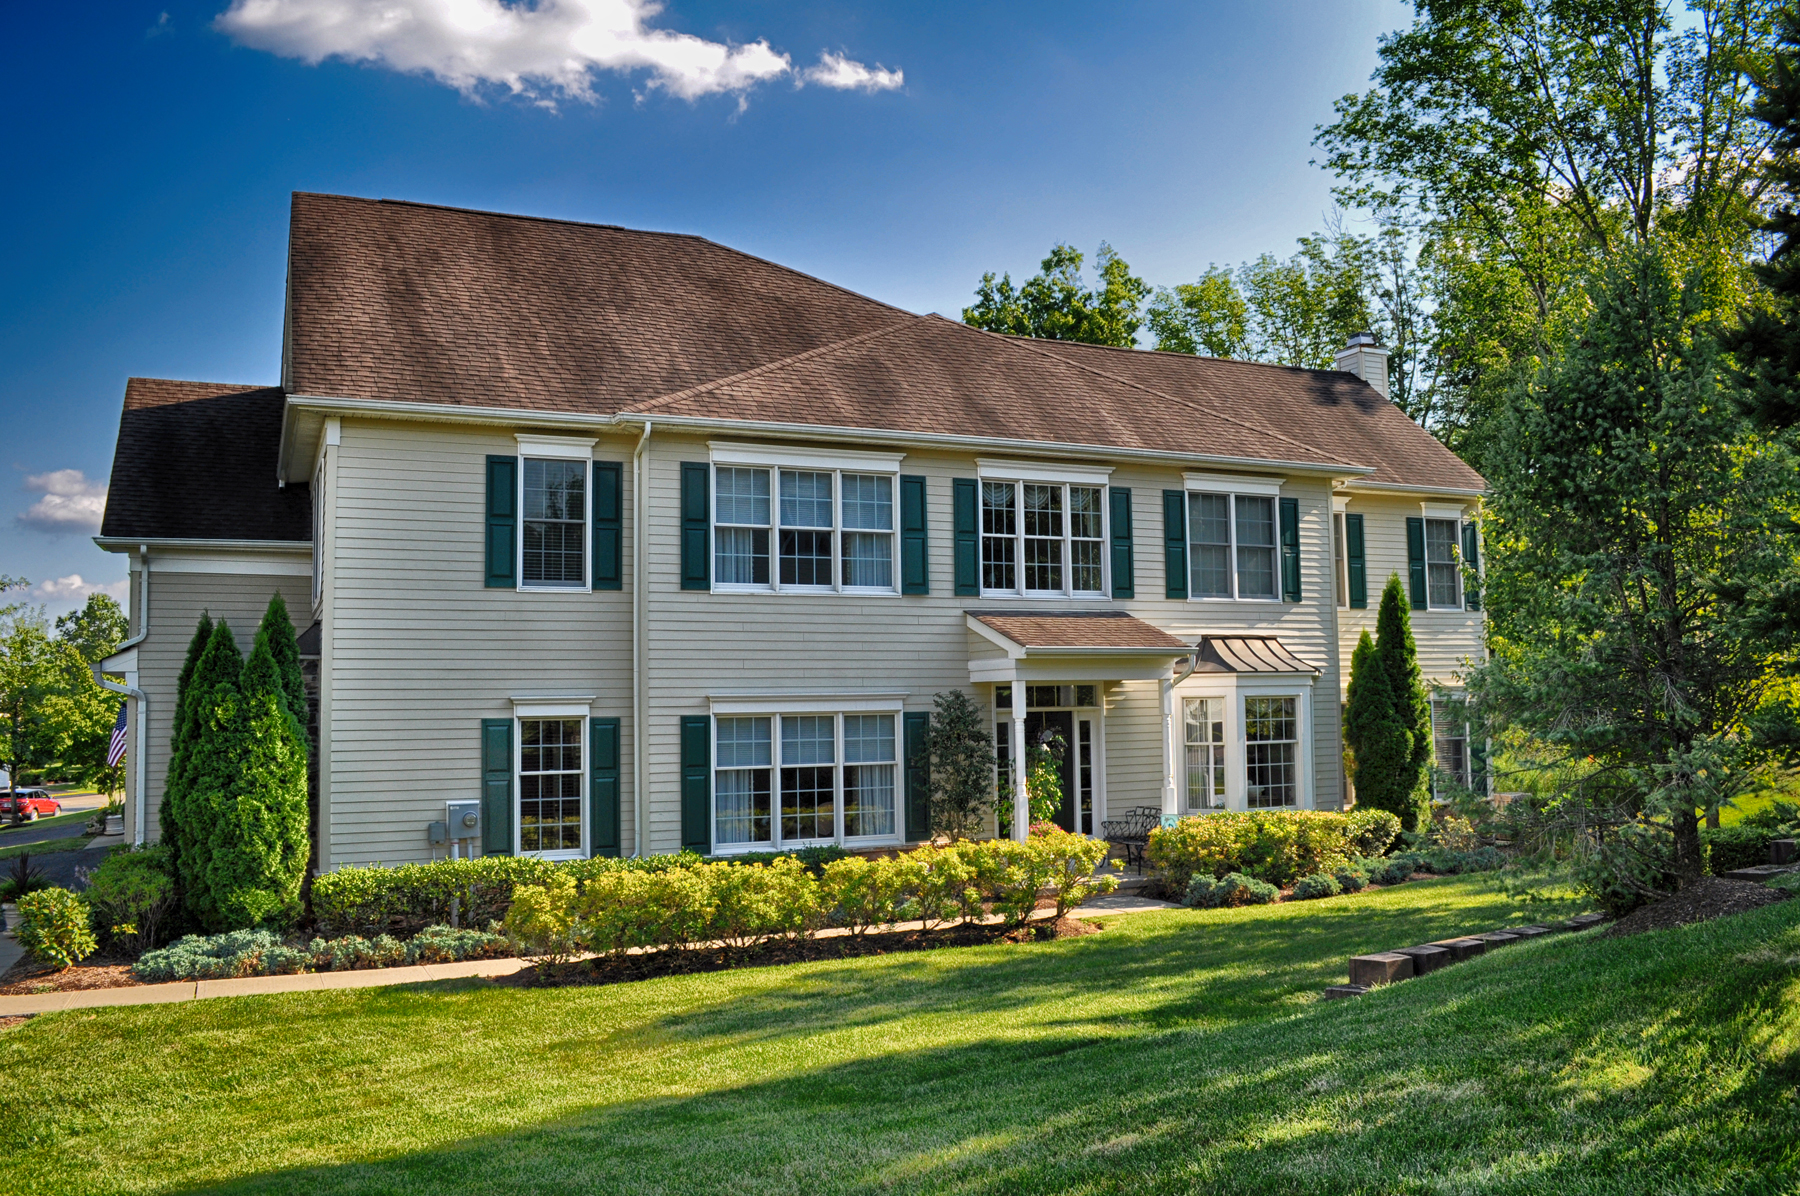 Townhouse for Sale at Elegant Carriage Style Townhome 1504 Farley Road Tewksbury Township, New Jersey, 08889 United States